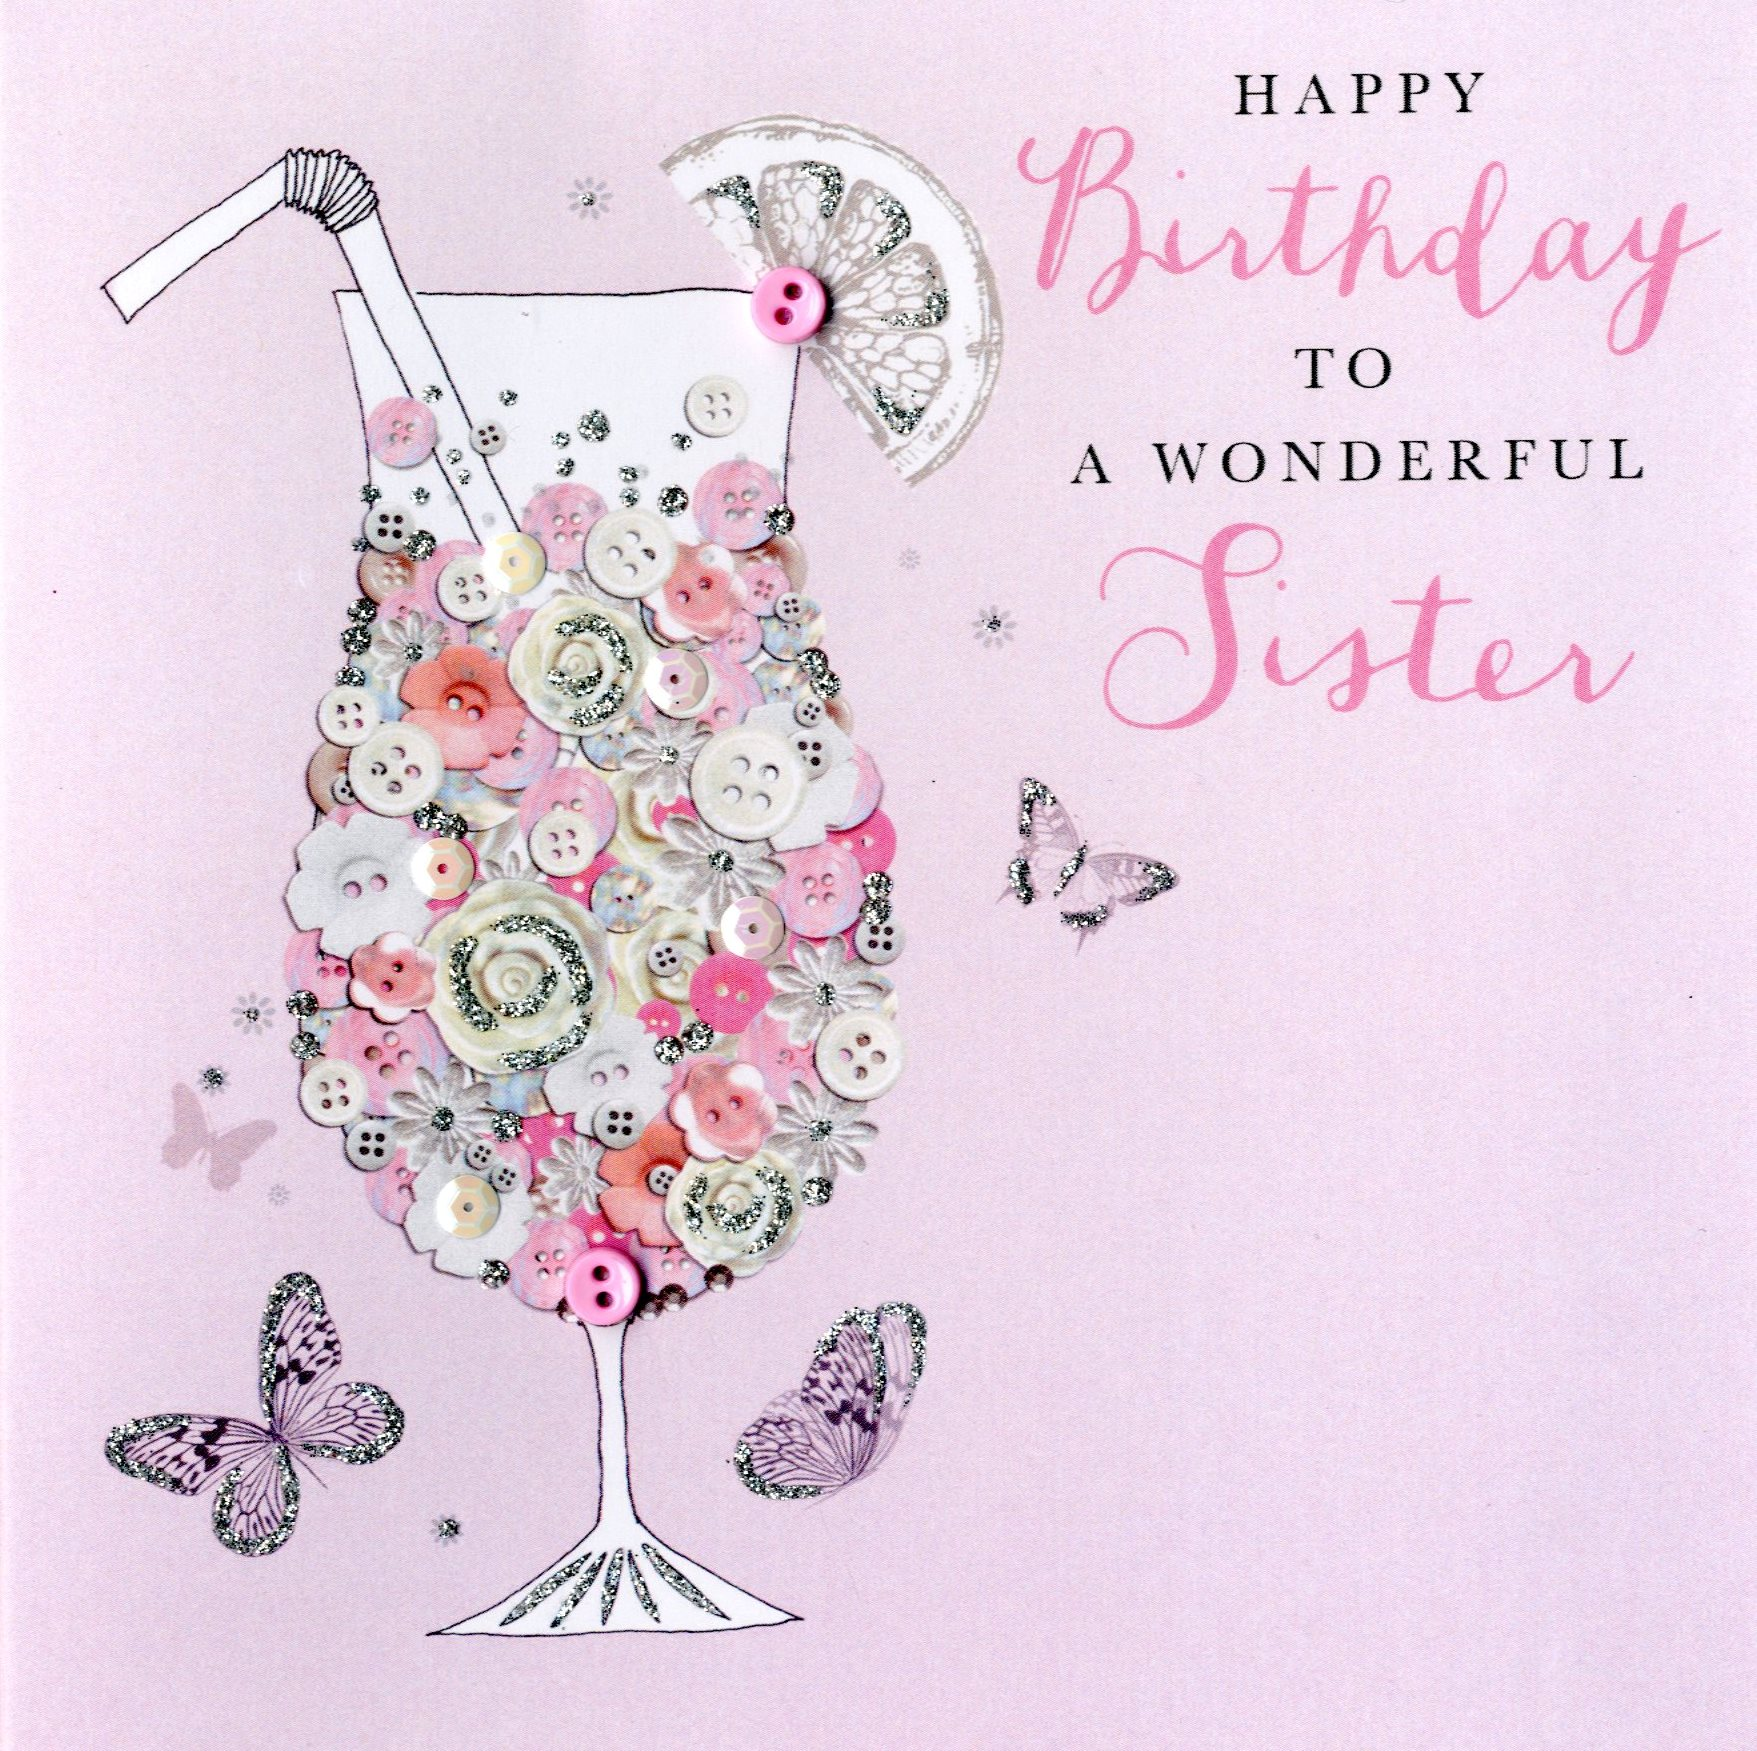 wonderful sister birthday buttoned up greeting card button